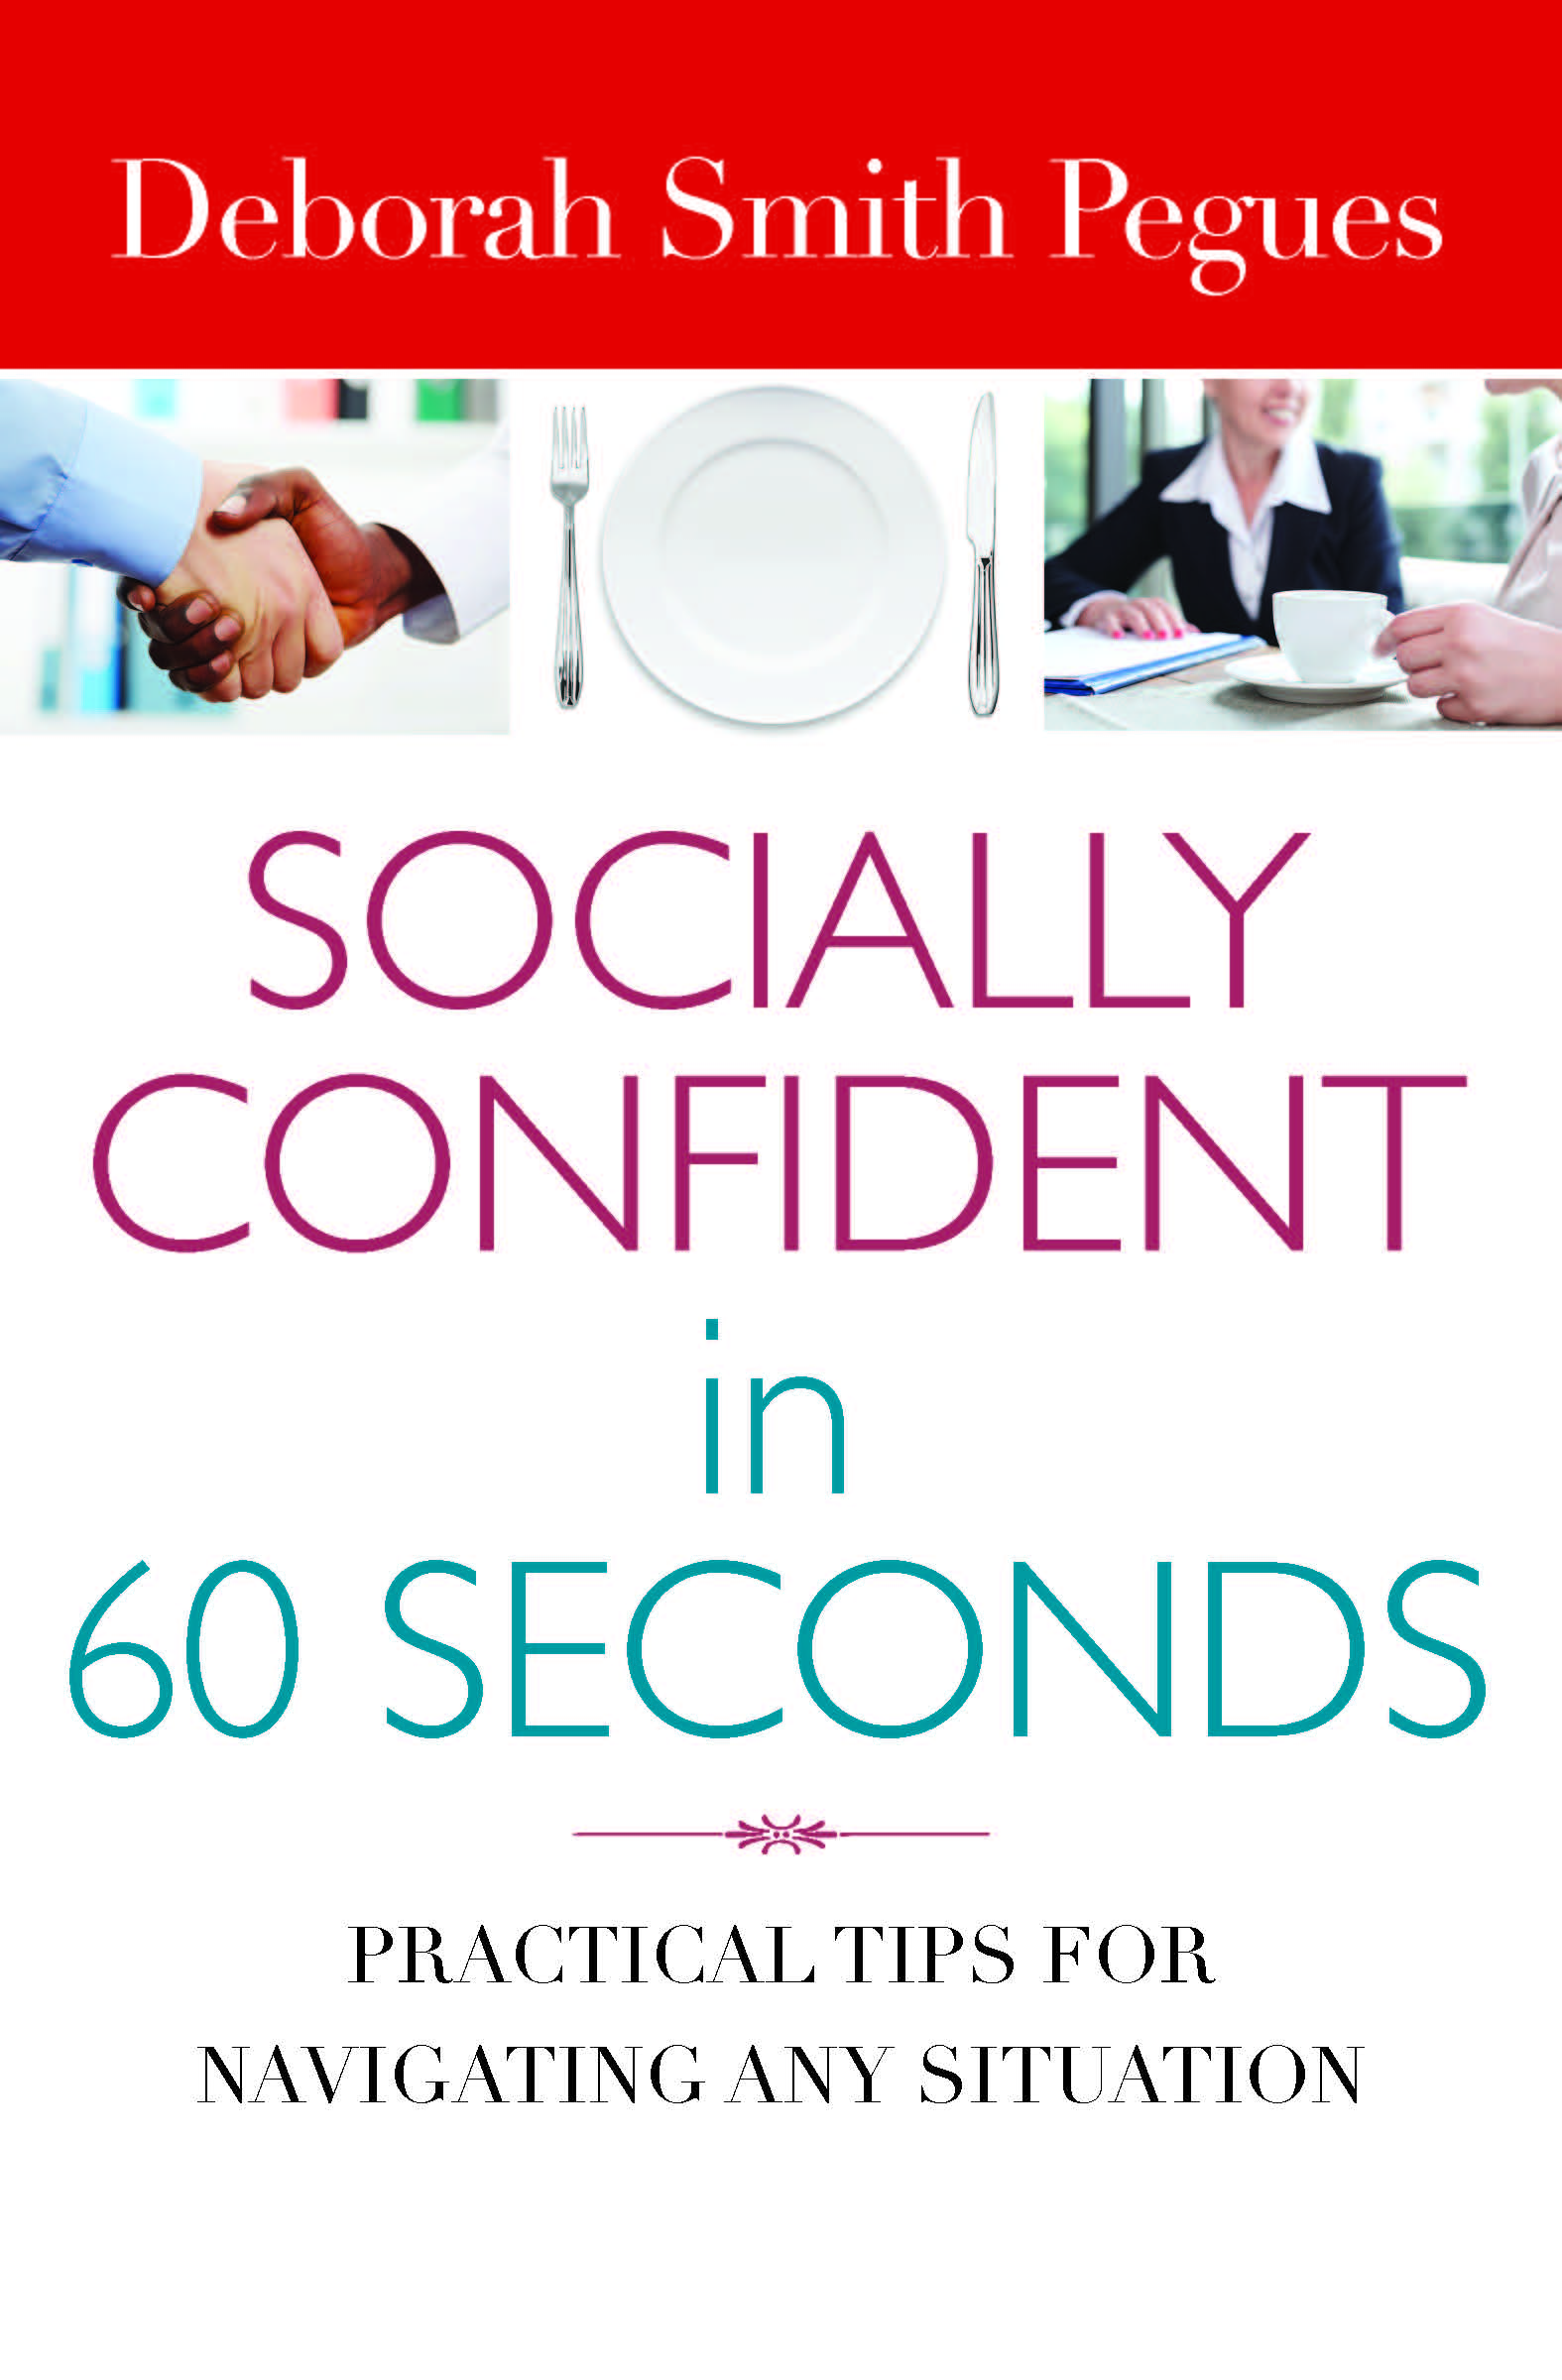 Socially Confident _FRONT ONLY Image